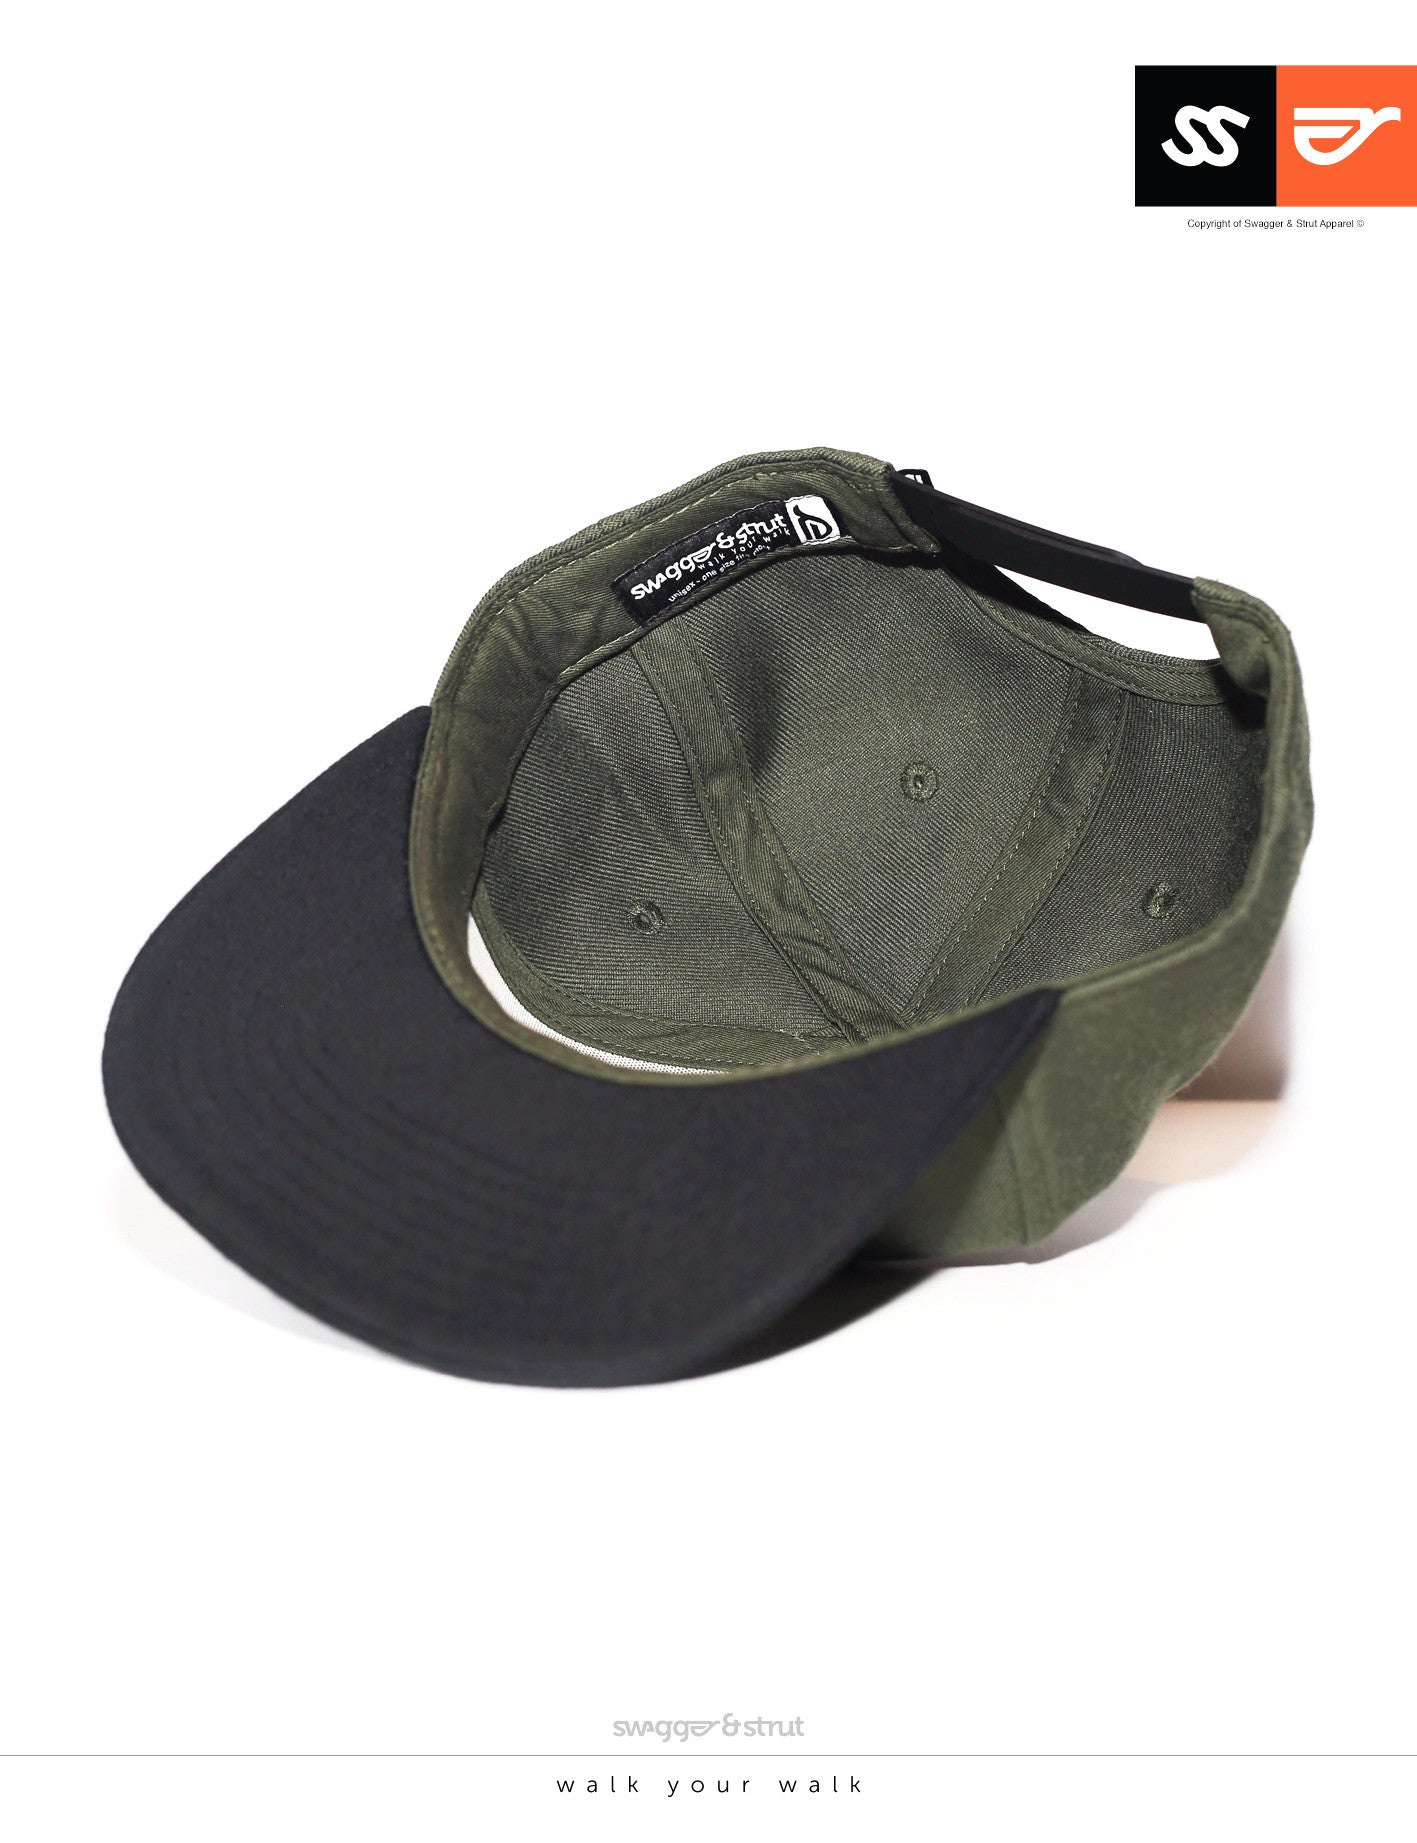 SS Logo Snapback - Army Green & Black